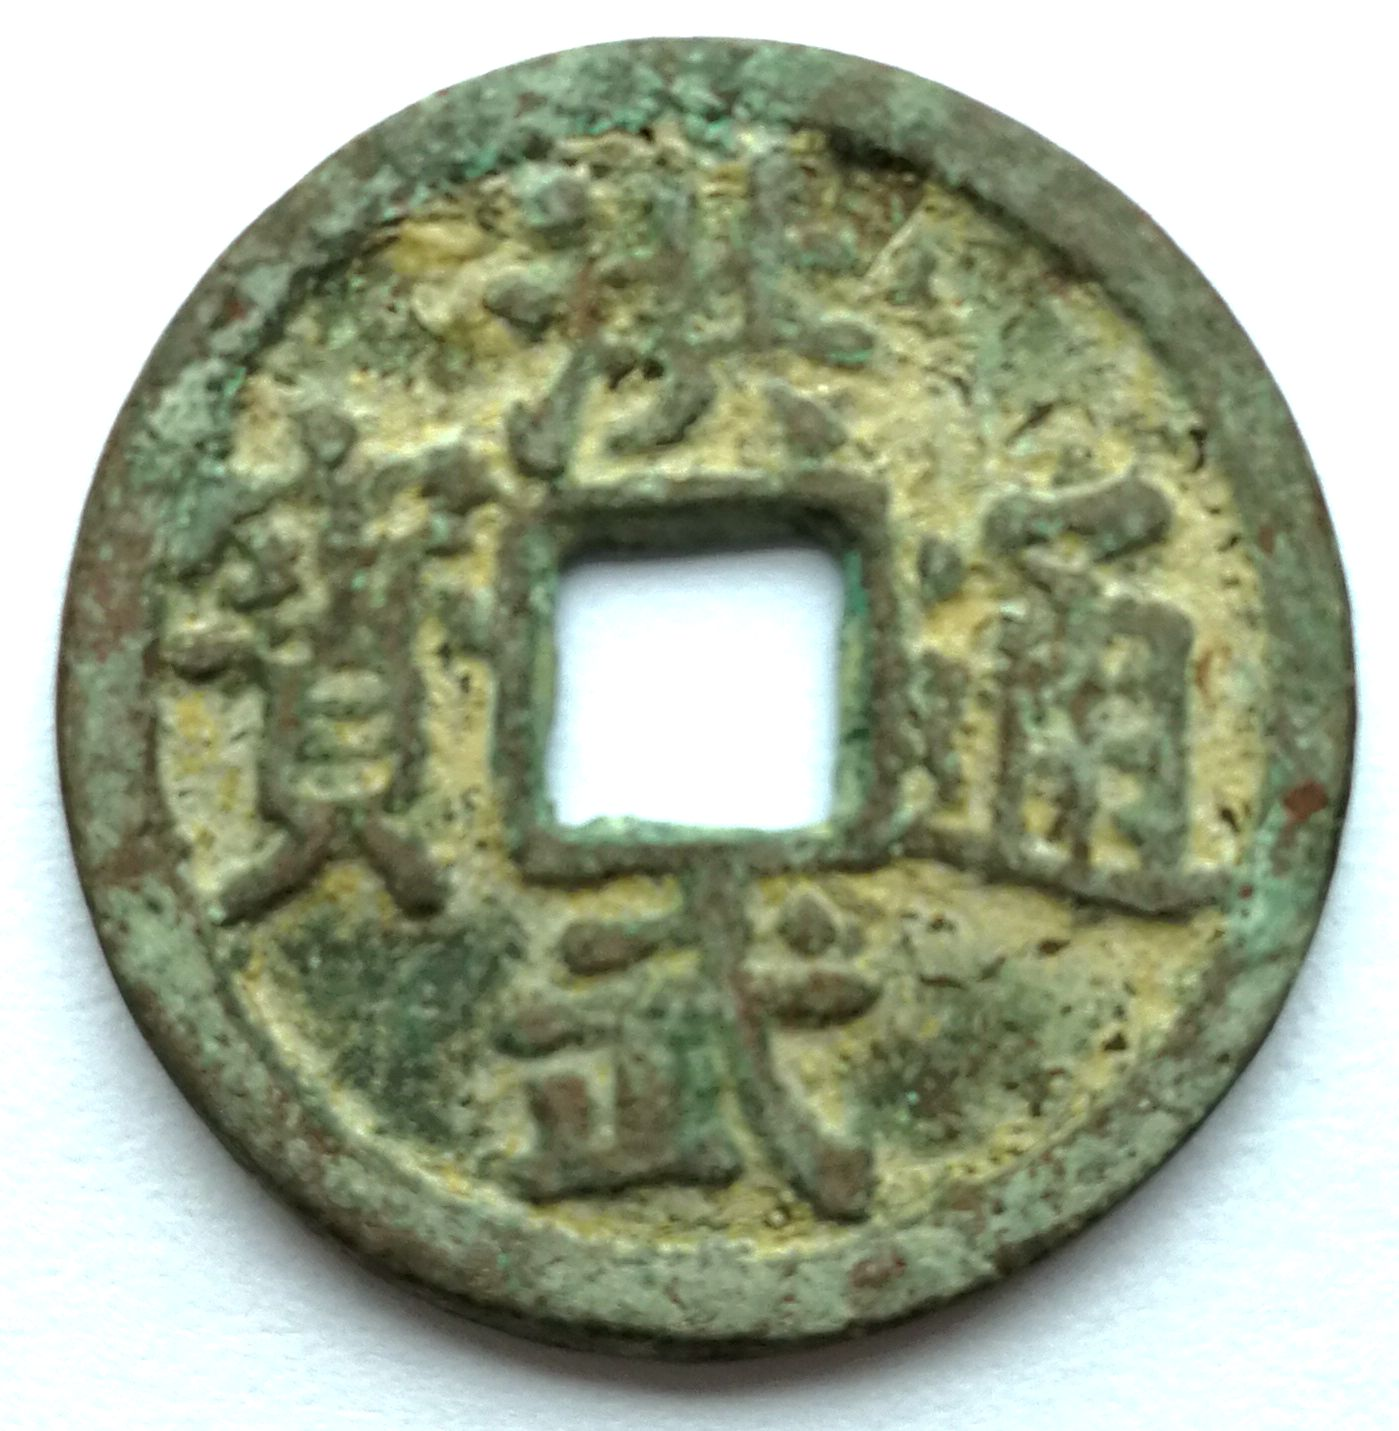 K3438, Hong-Wu Tong-Bao Coin (Fuzhou Mint), China Ming Dynasty, AD1368